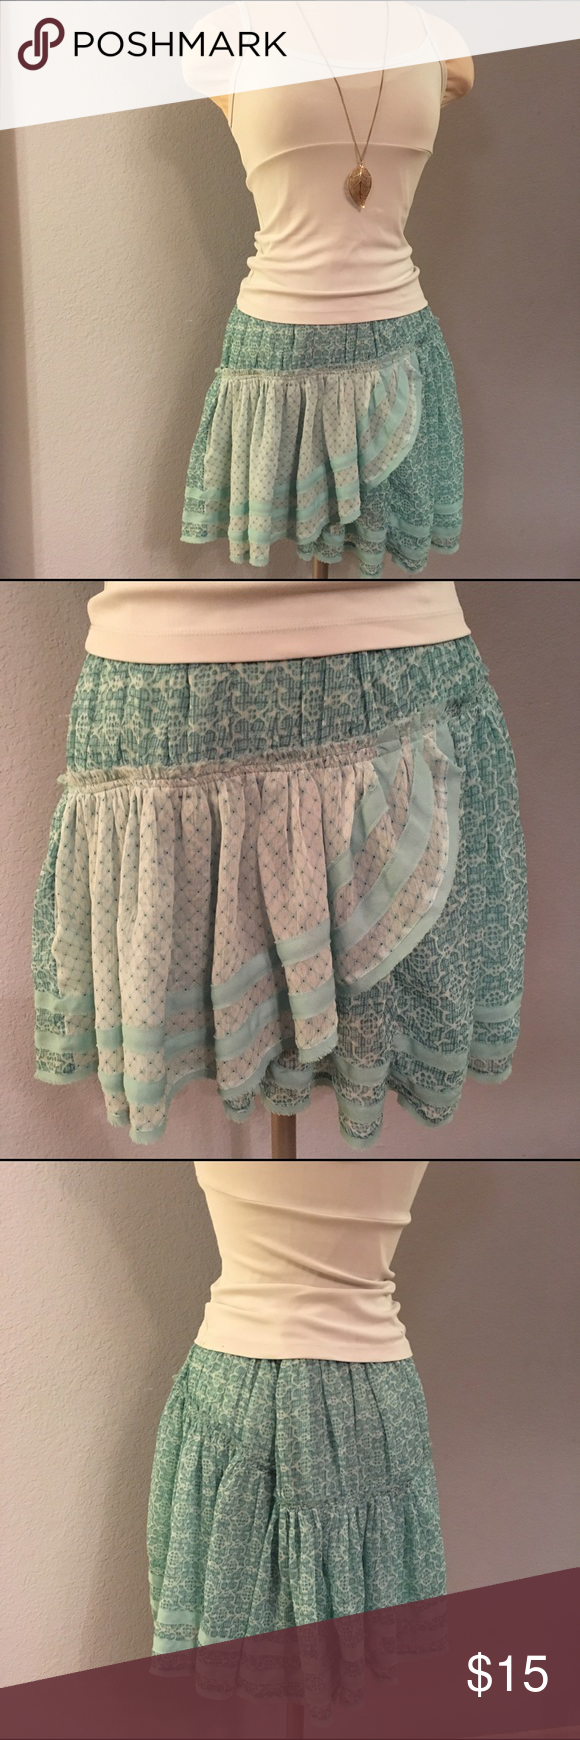 """Free People Skirt Size 6 This is a pretty Tiffany blue colored Free People skirt in size 6 (approx 14"""" waist/16-17"""" in length). It zips and clasps at side of waist and is fully lined underneath. In good condition, no flaws. *this is for the skirt only Free People Skirts Midi"""